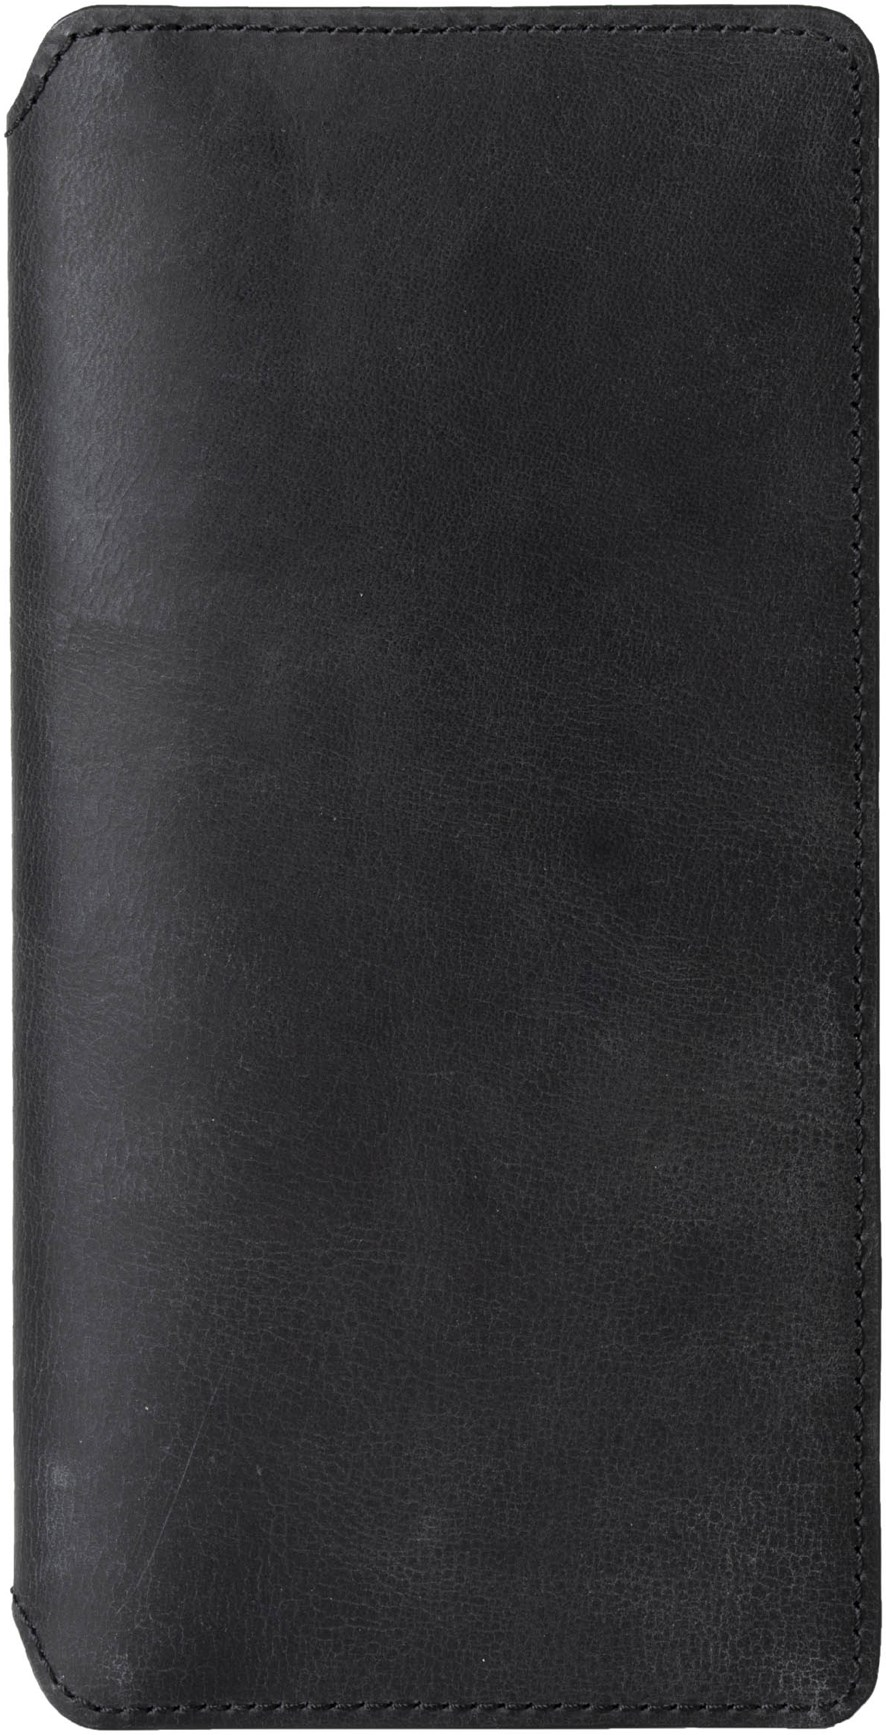 Krusell Sunne Phonewallet Samsung Galaxy Note 10 Plus Vintage Black